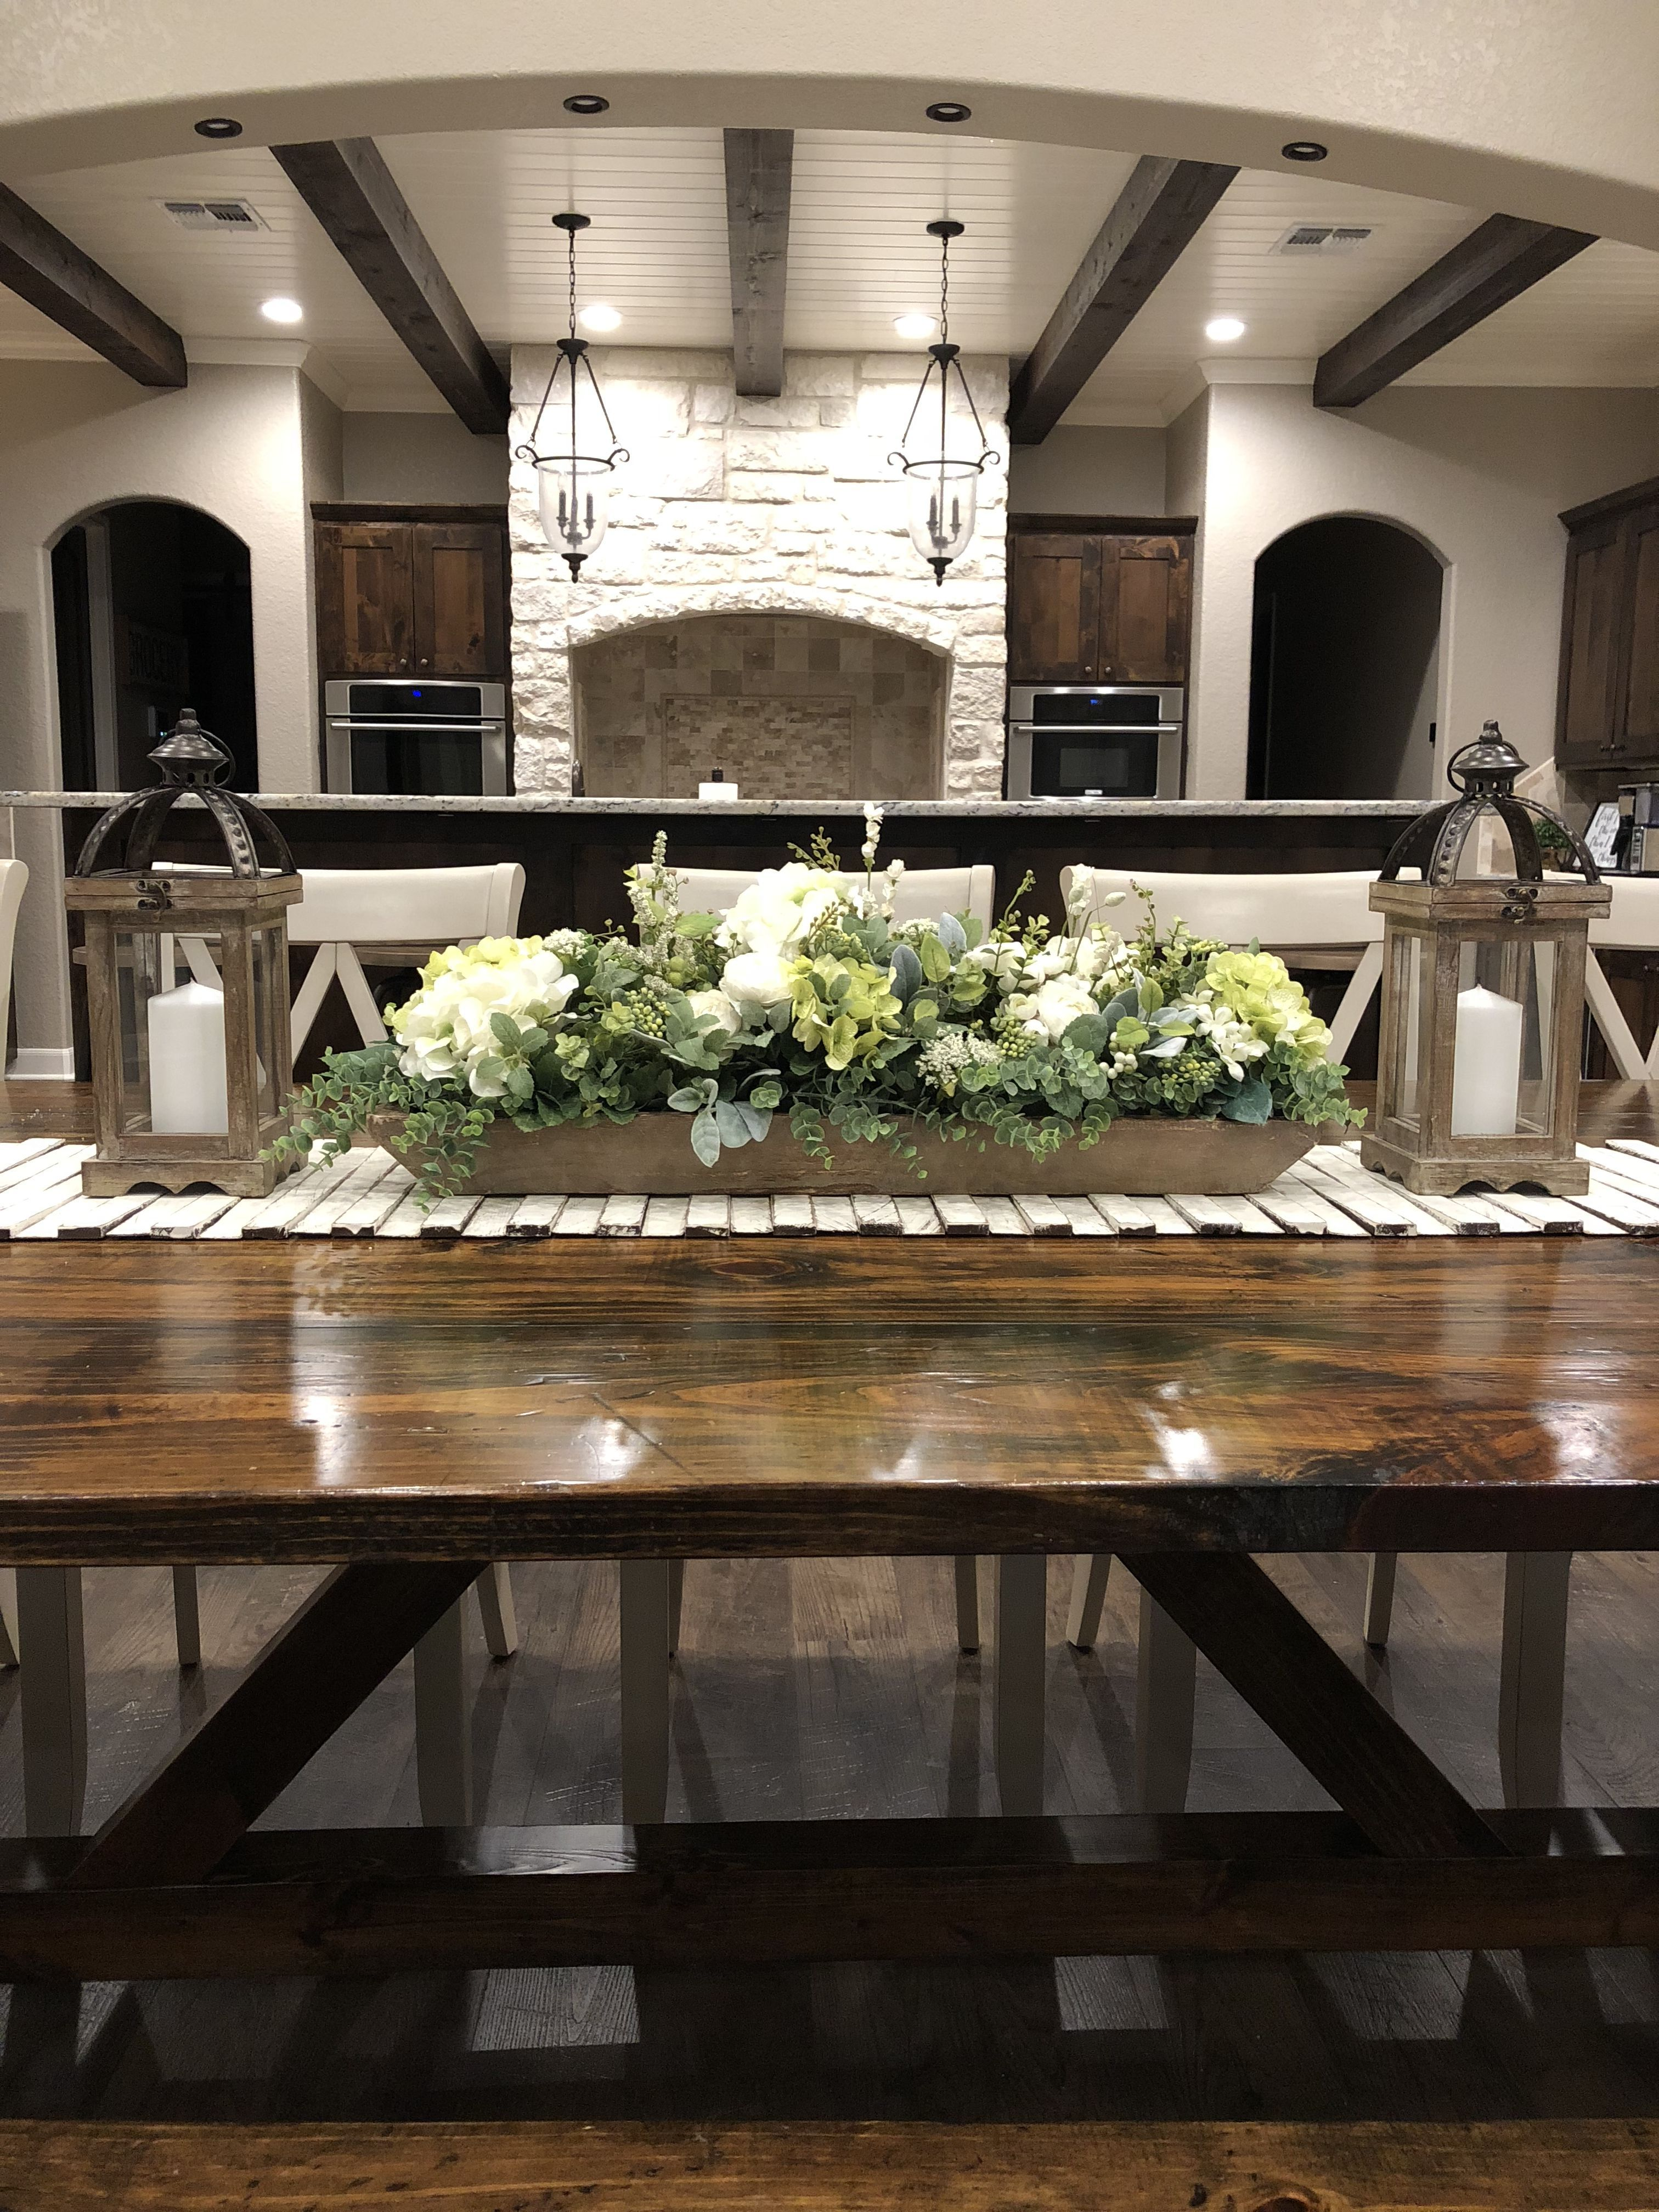 Dough Bowl Floral Lanterns Rustic Runner Dining Room Table